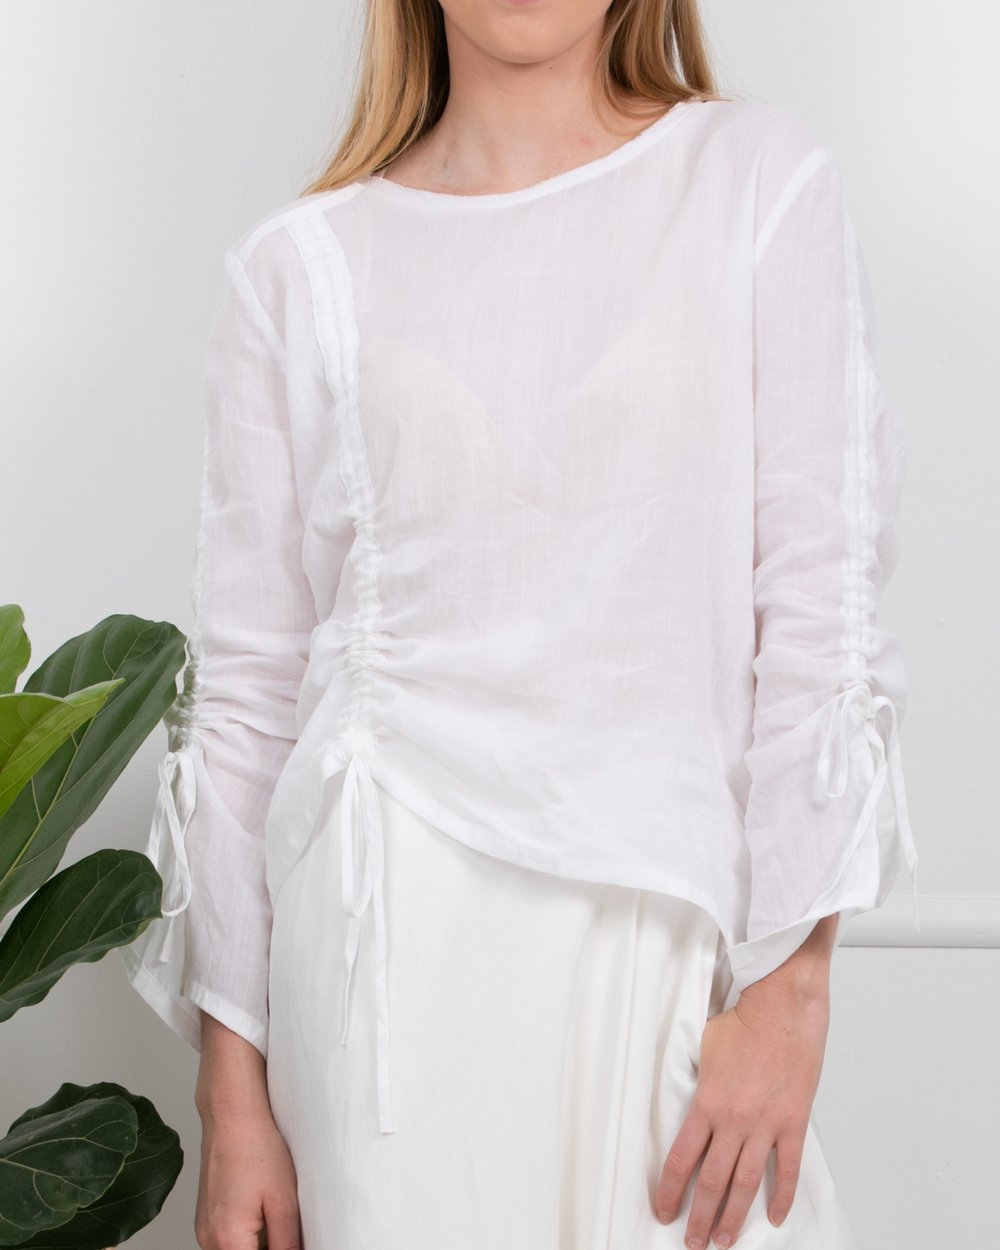 ZK WINK TOP WHITE